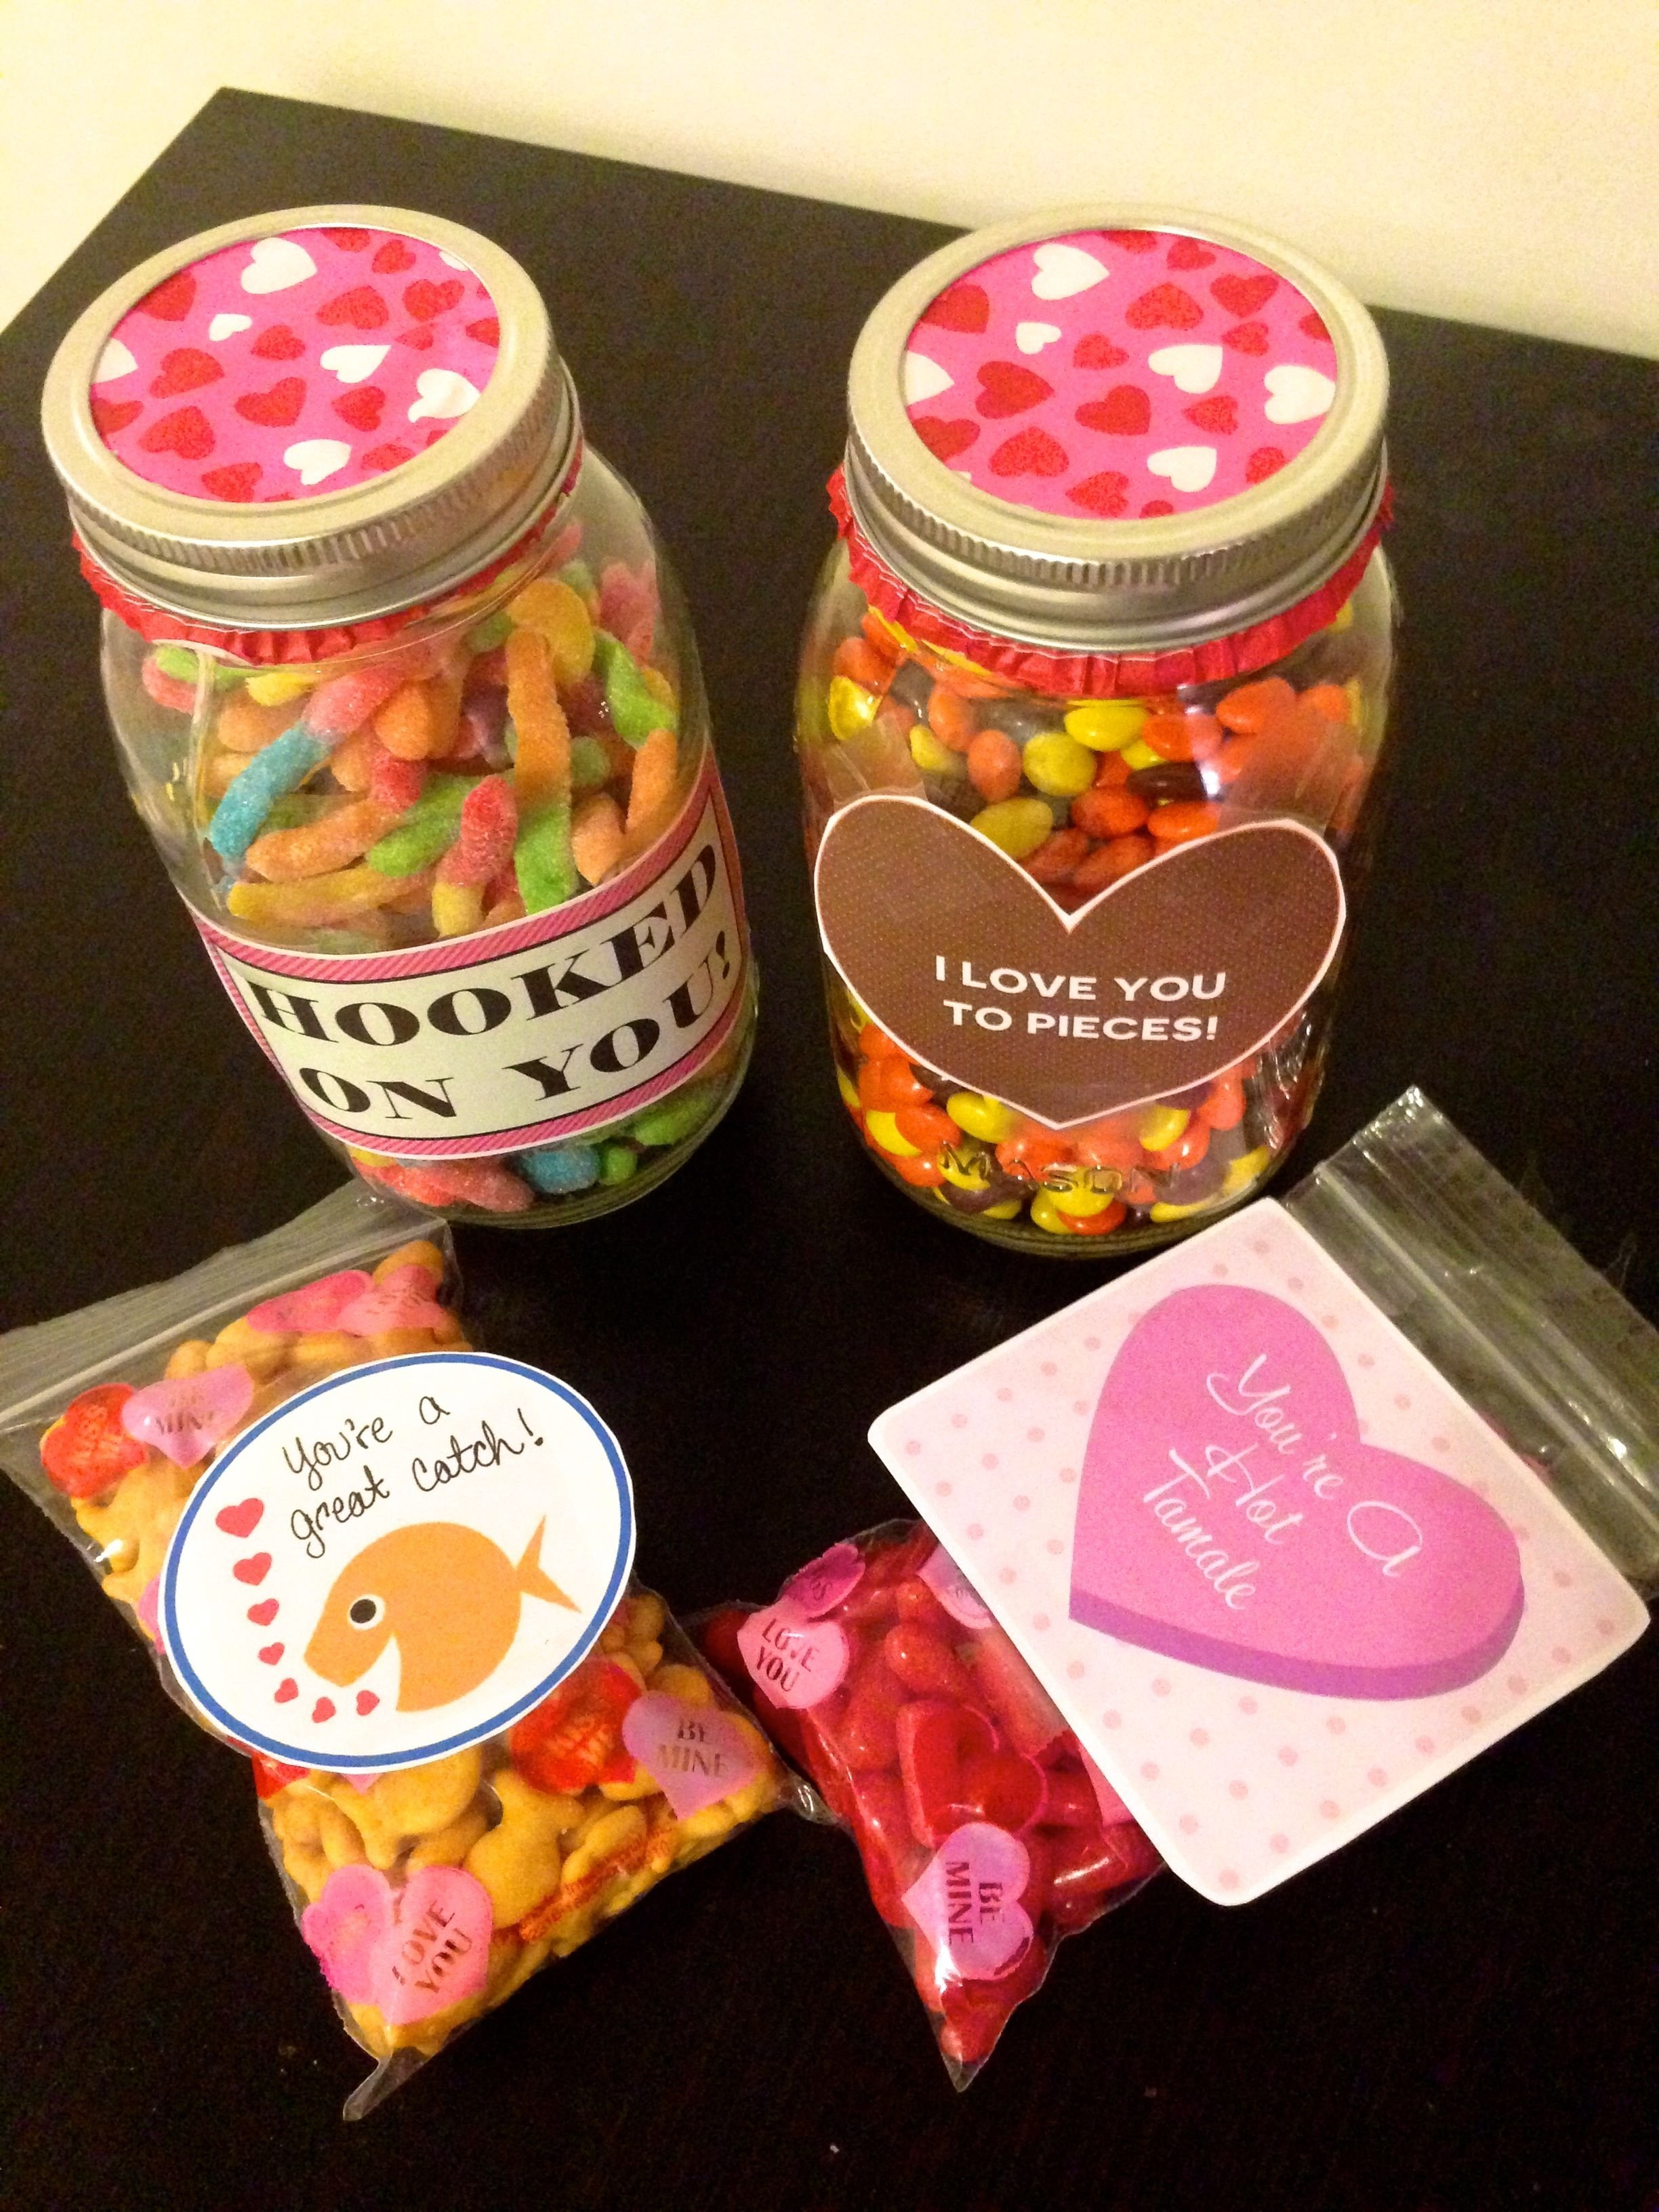 10 Attractive Sweetest Day Gift Ideas Boyfriend romantic gift idea for him on a budget budgeting honey and romantic 37 2020